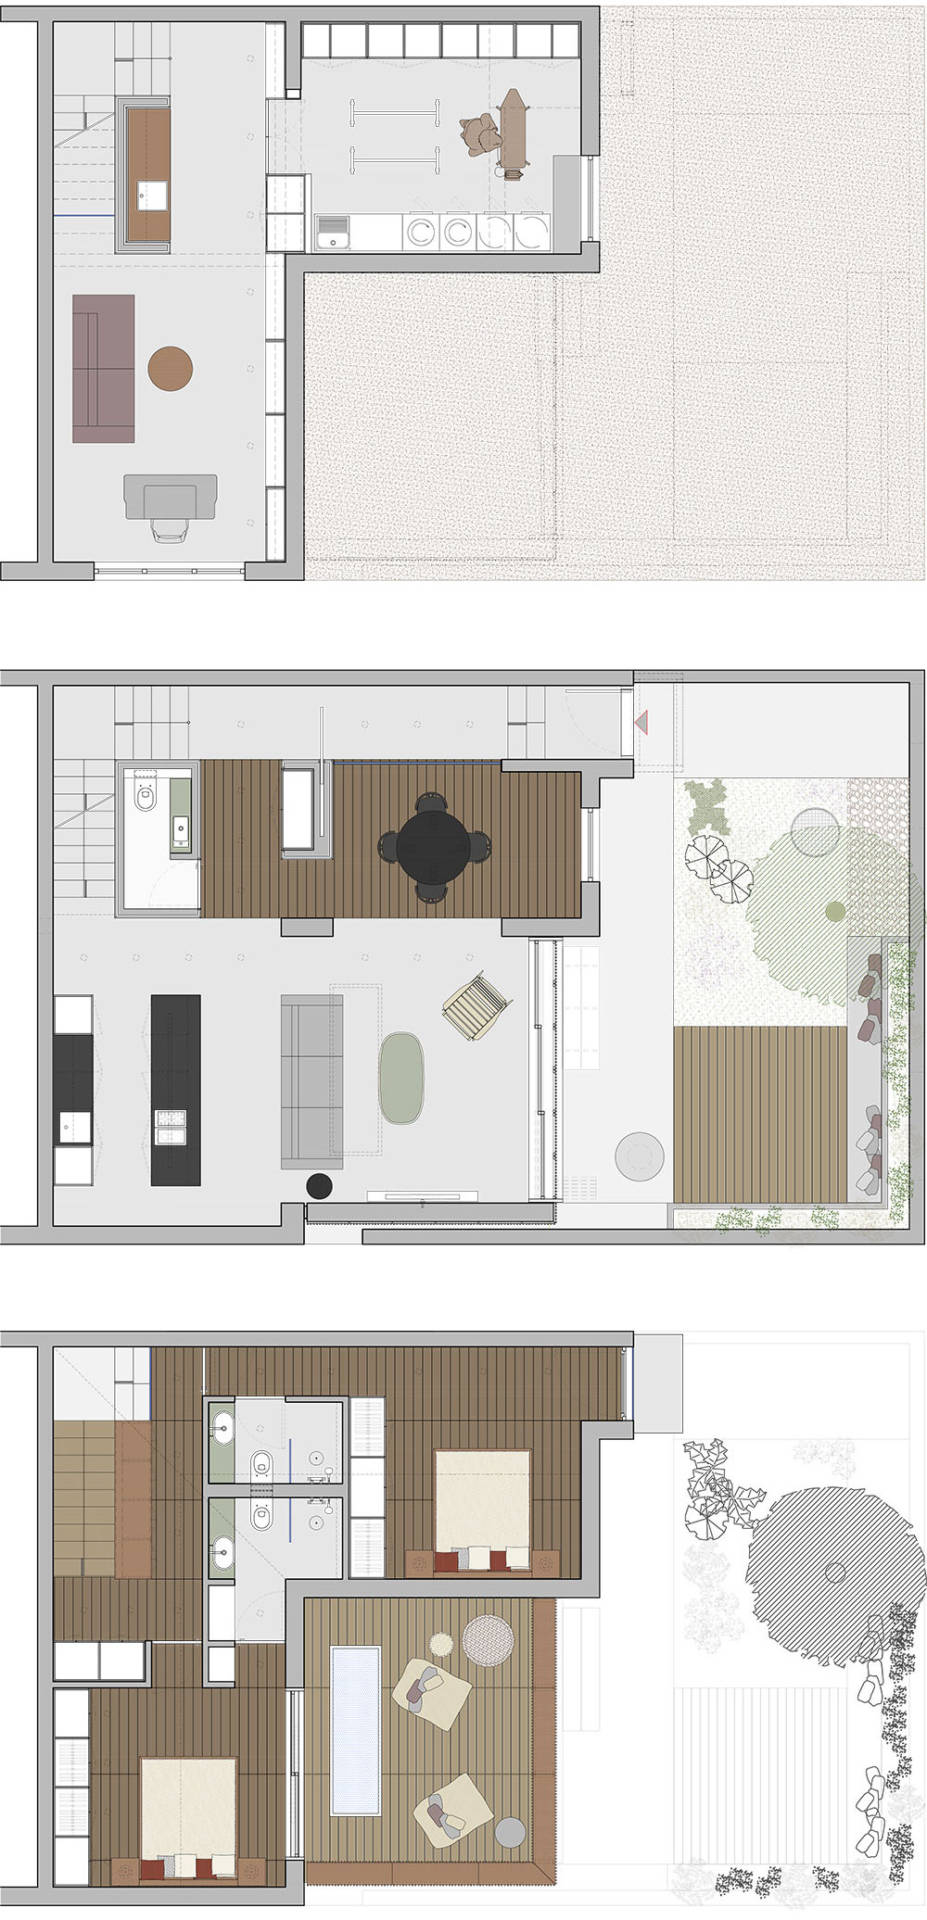 house-mm-drawing-01